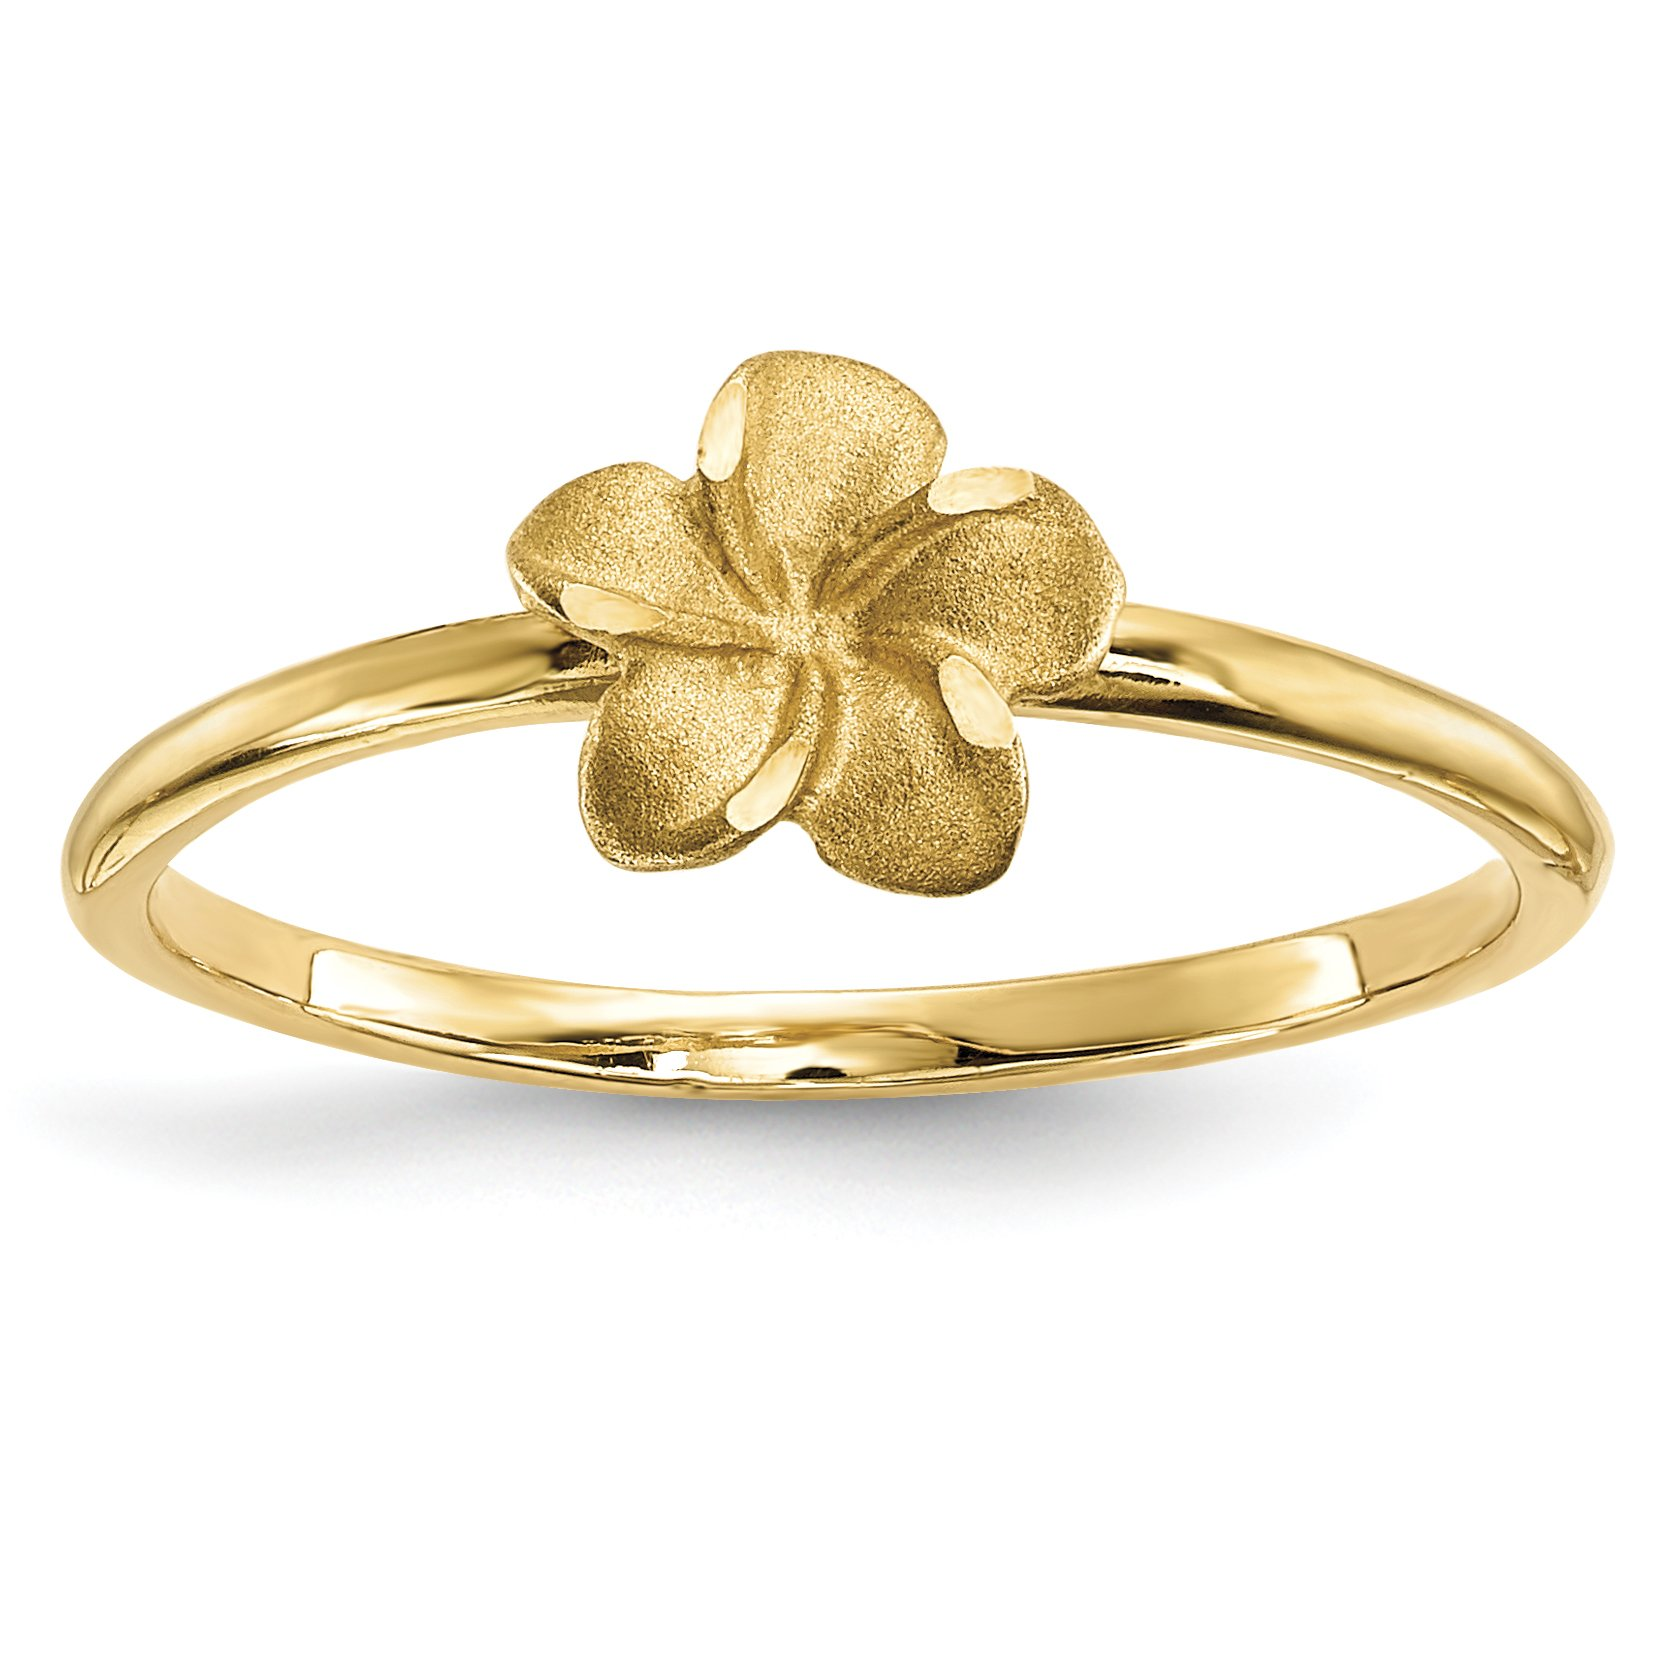 ICE CARATS 14k Yellow Gold Plumeria Band Ring Size 7.00 Flowers/leaf Fine Jewelry Gift Set For Women Heart